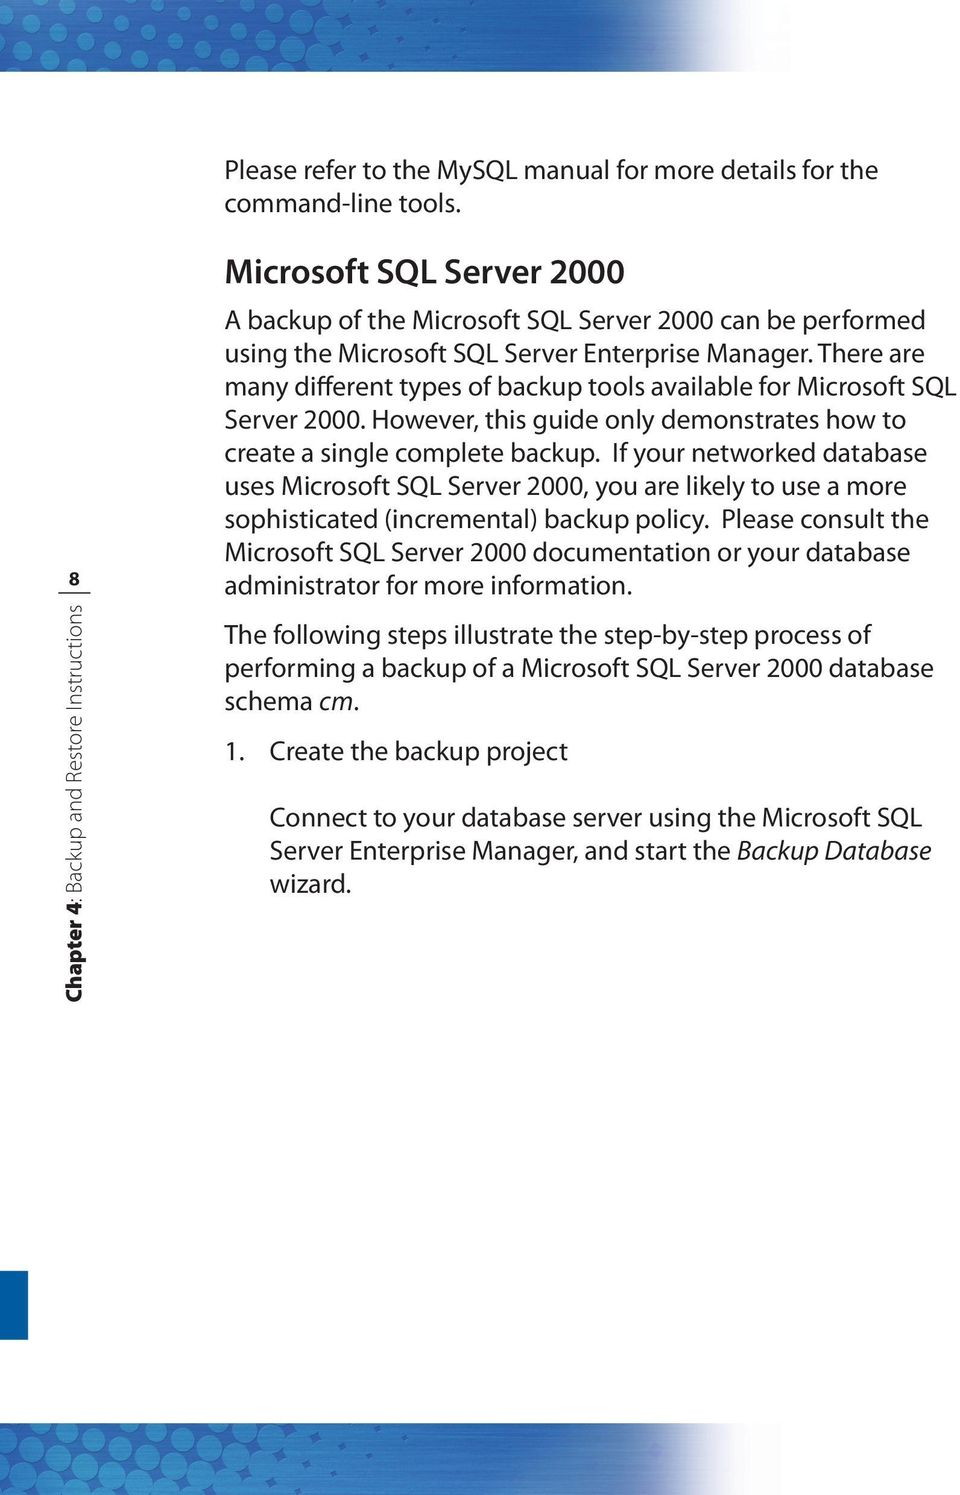 There are many different types of backup tools available for Microsoft SQL Server 2000. However, this guide only demonstrates how to create a single complete backup.